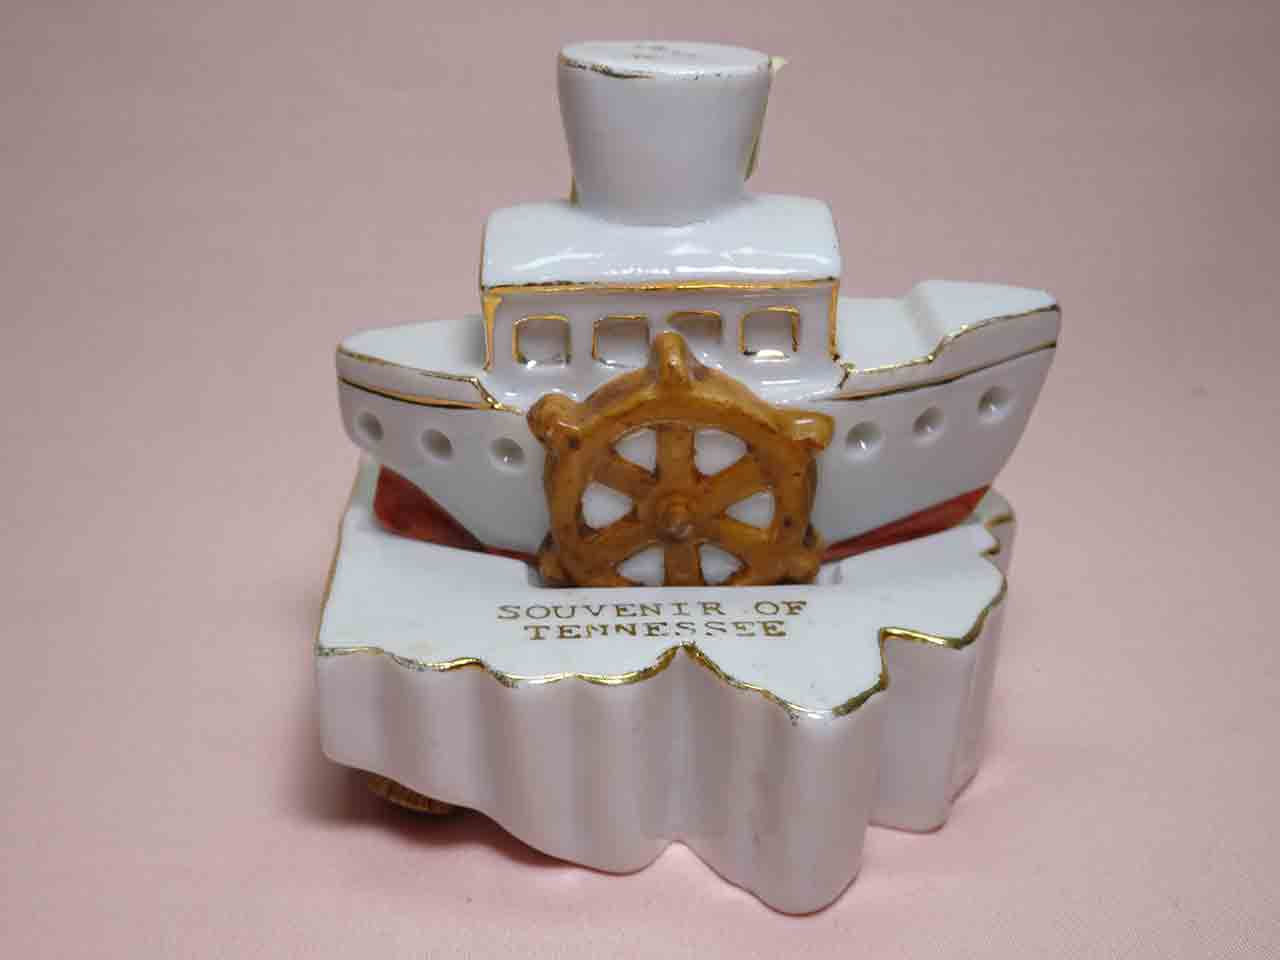 Ohio and river boat salt and pepper shakers